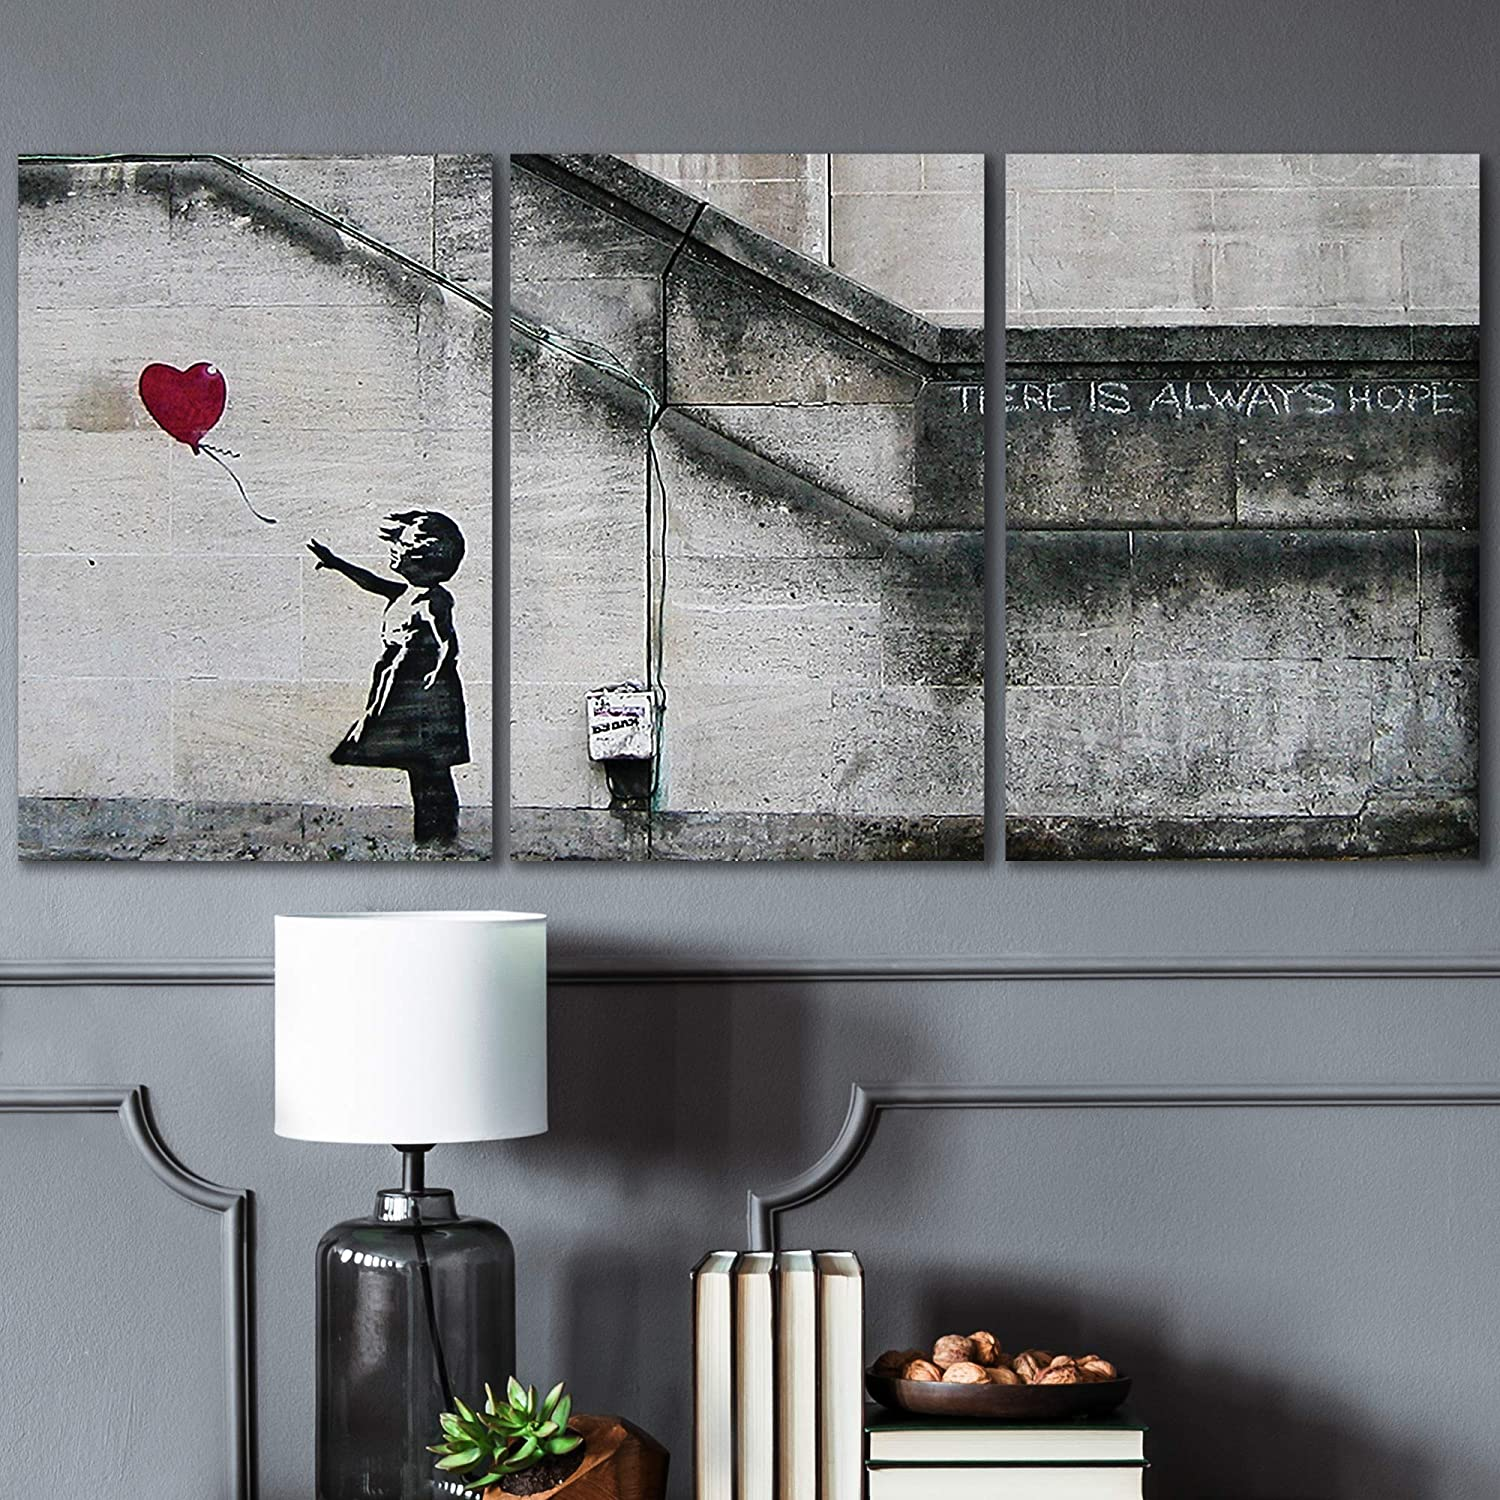 Amazon Com Wall26 3 Piece Canvas Wall Art There Is Always Hope Girl And Red Heart Balloon Street Art Guerilla Modern Home Art Stretched And Framed Ready To Hang